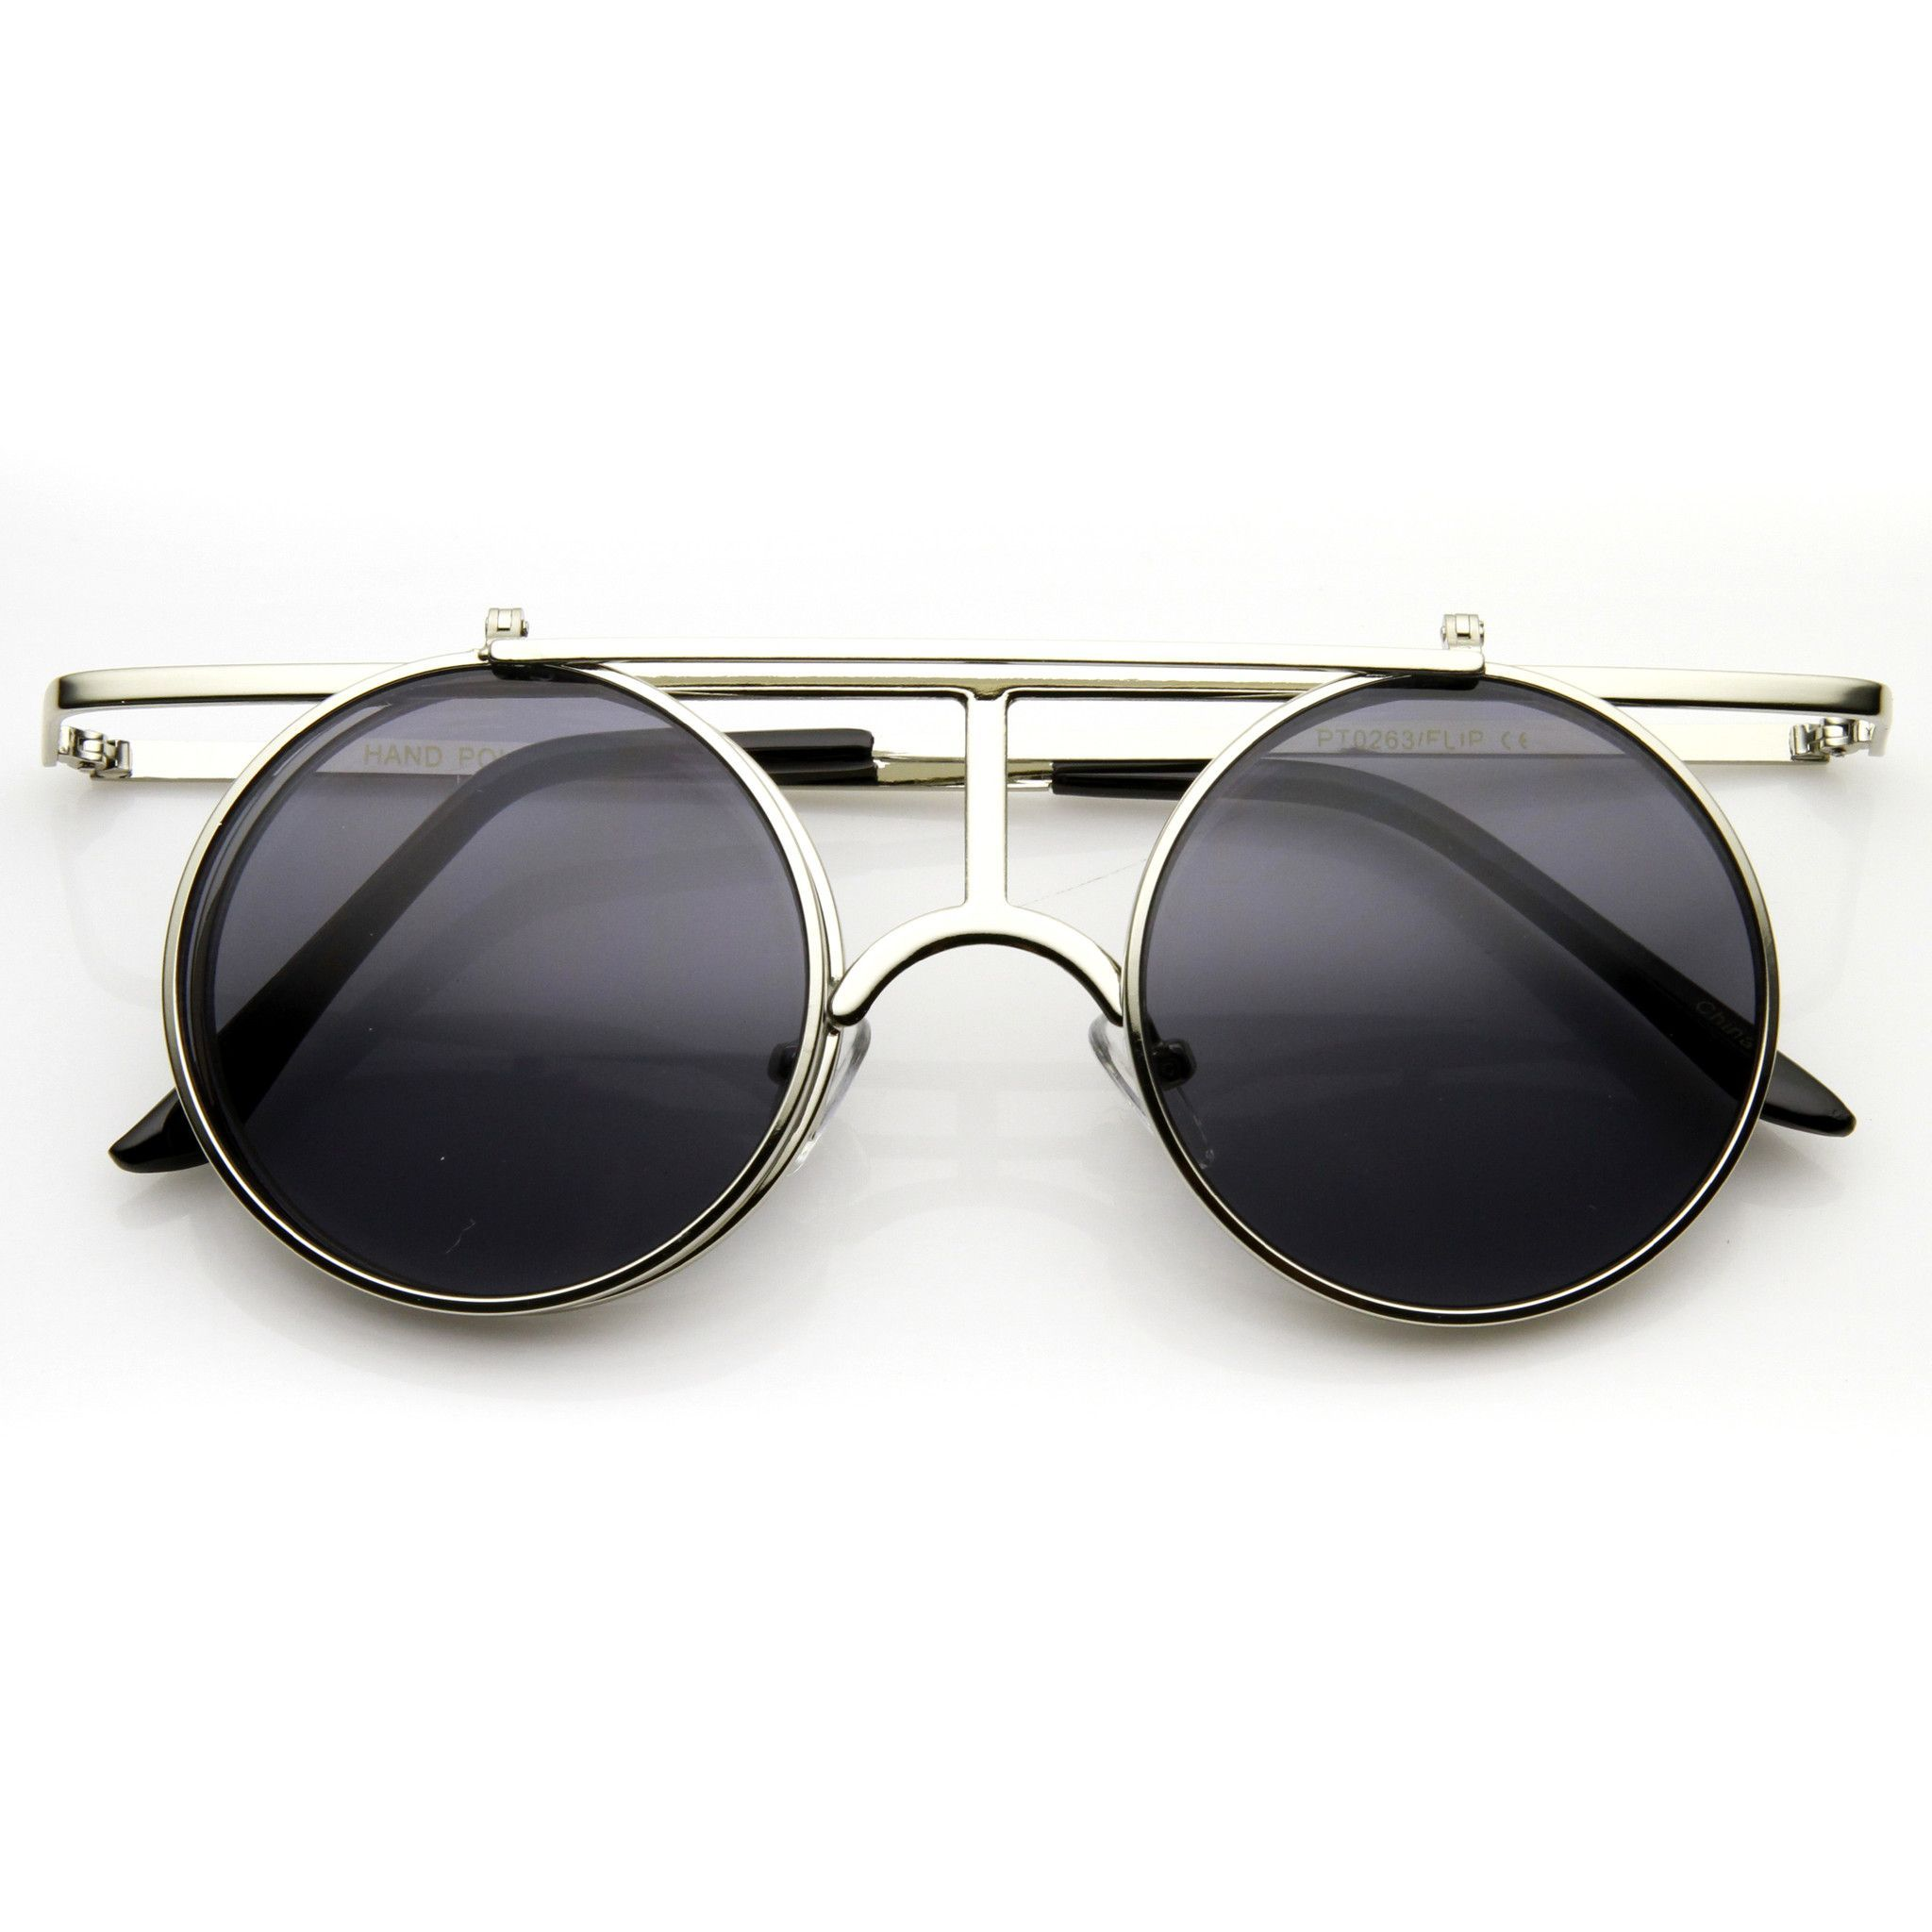 be9eeb432c Steampunk Vintage Inspired Crossbar Flip Up Metal Sunglasses 8972 from  zeroUV. Shop more products from zeroUV on Wanelo. Round Sunglasses ...